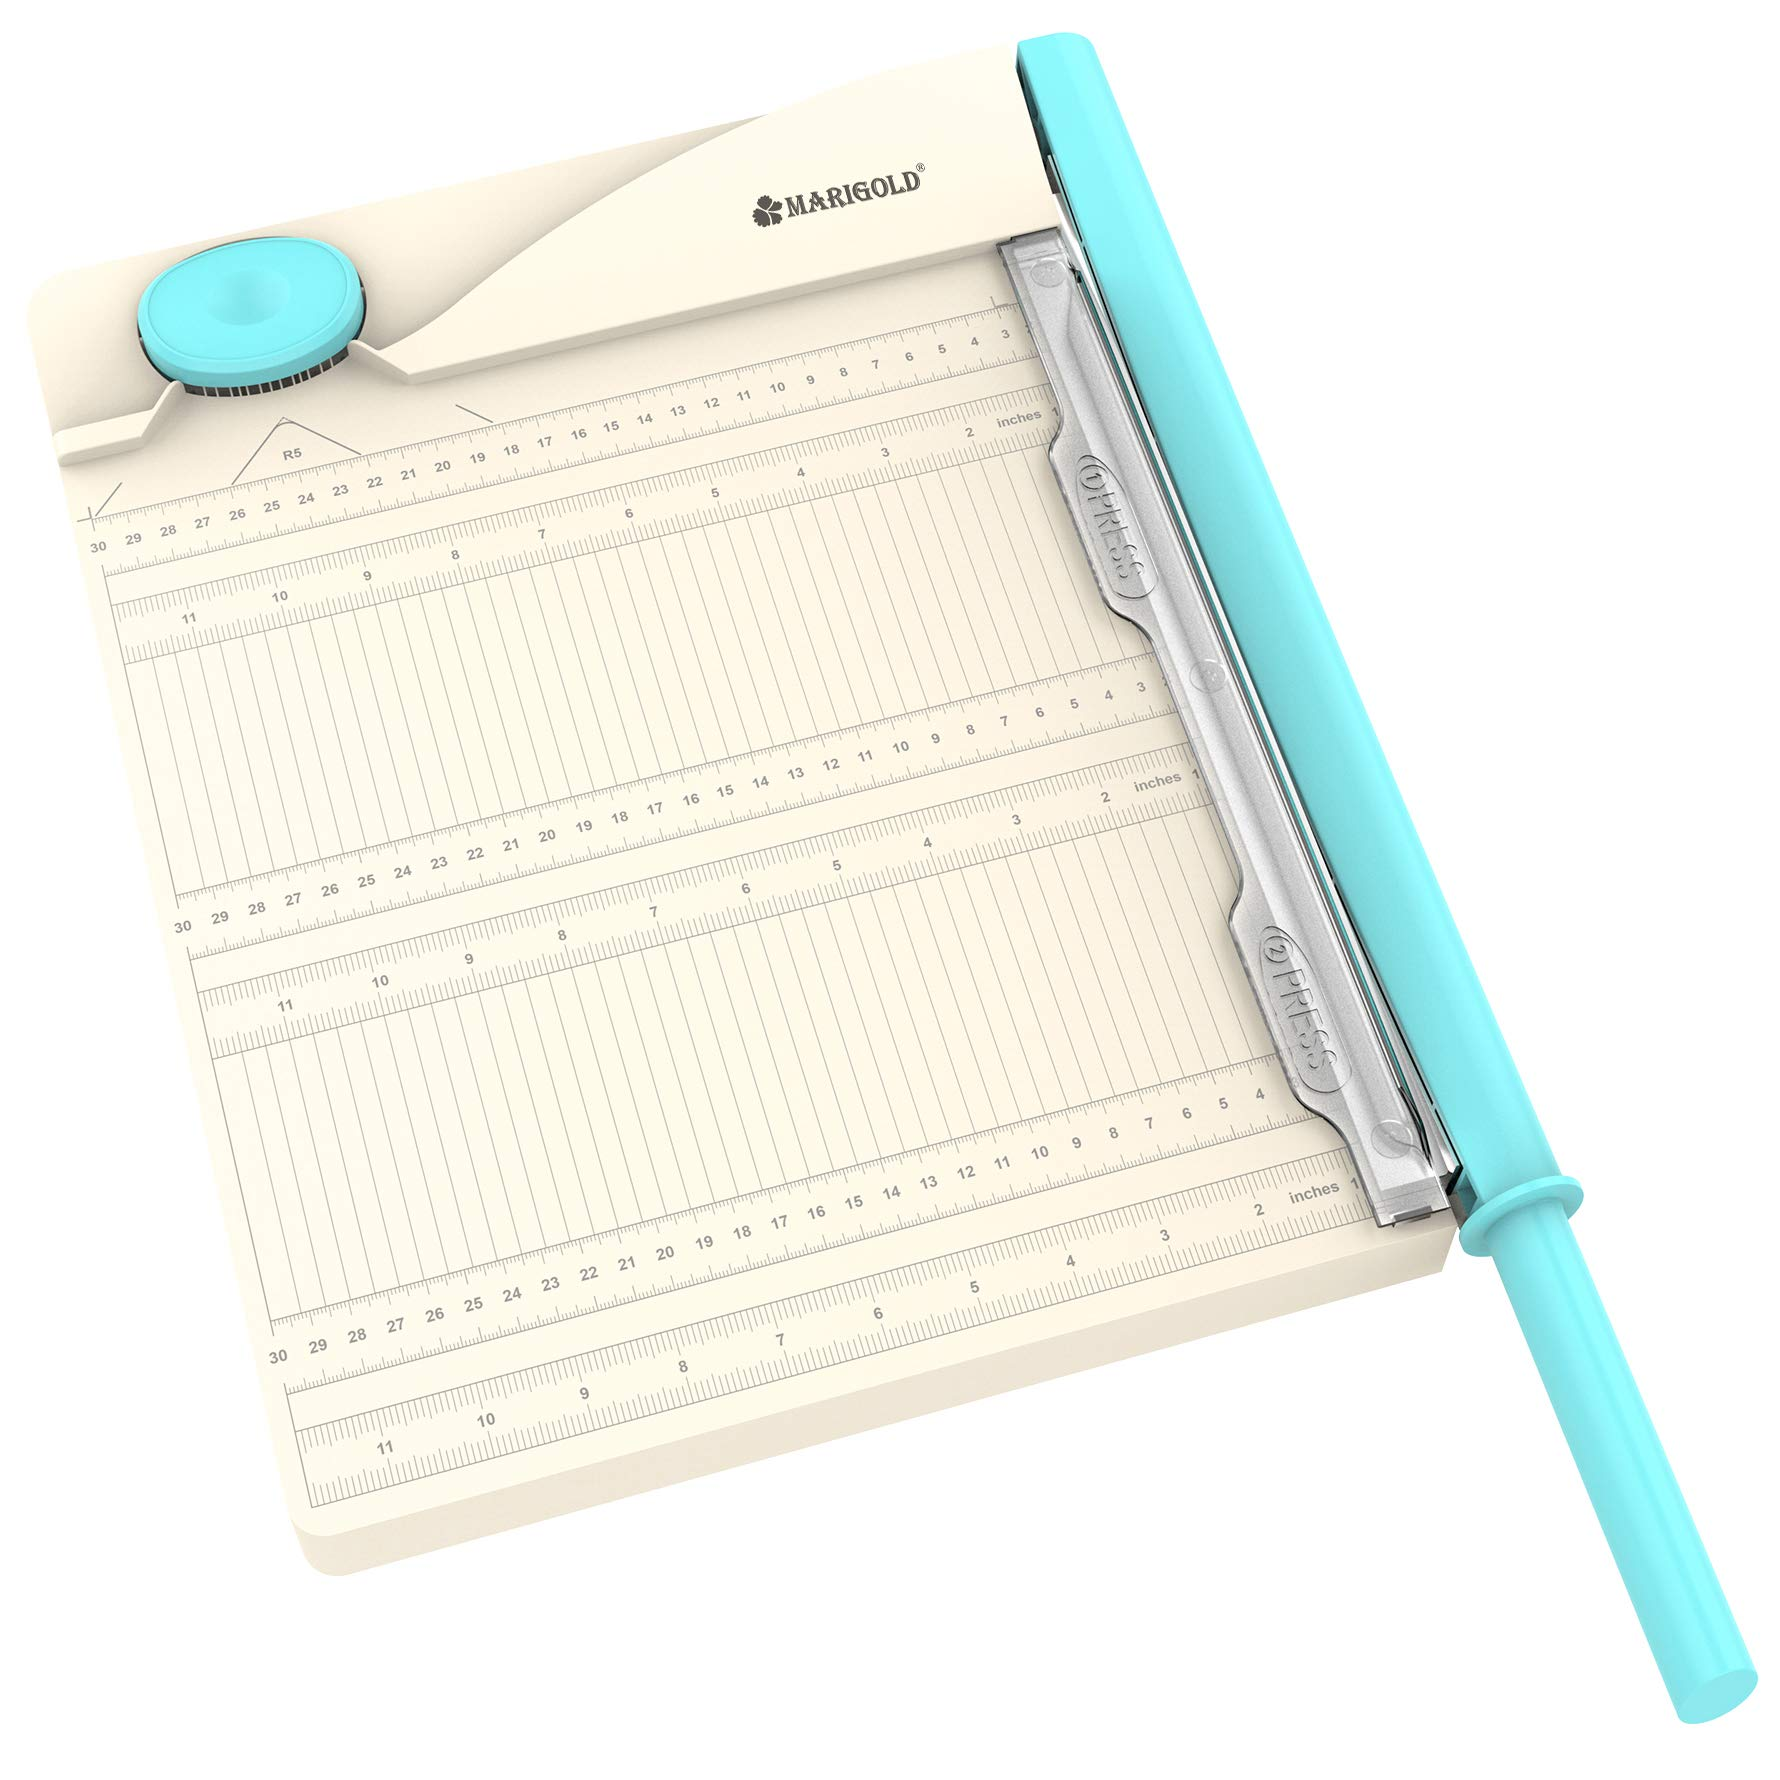 MARIGOLD Paper Guillotine Corner Puncher - 12'' Paper Cutter 2-in-1 Paper Trimmer by Marigold